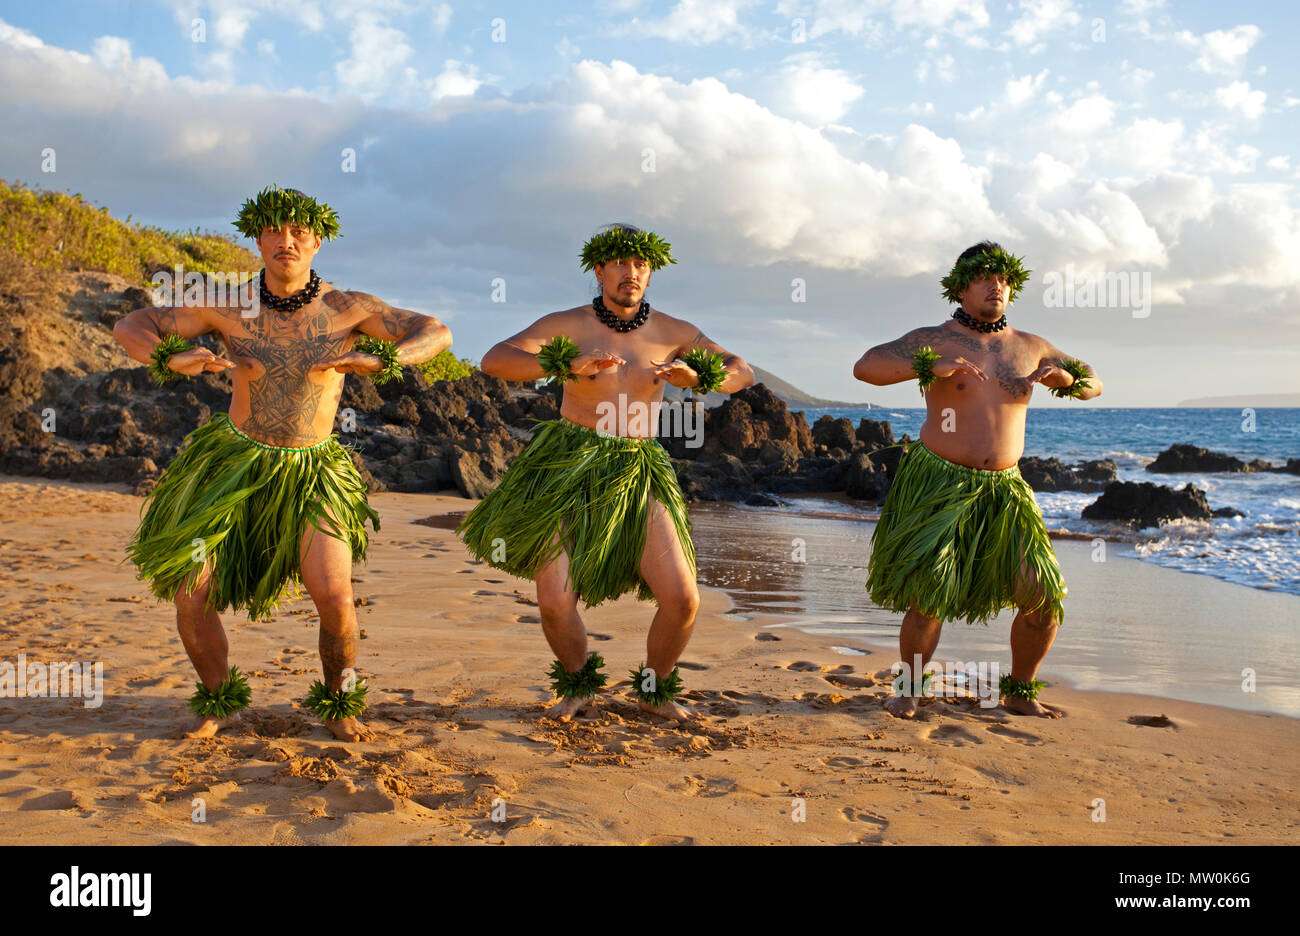 Three male hula dancers at Wailea, Maui, Hawaii - Stock Image